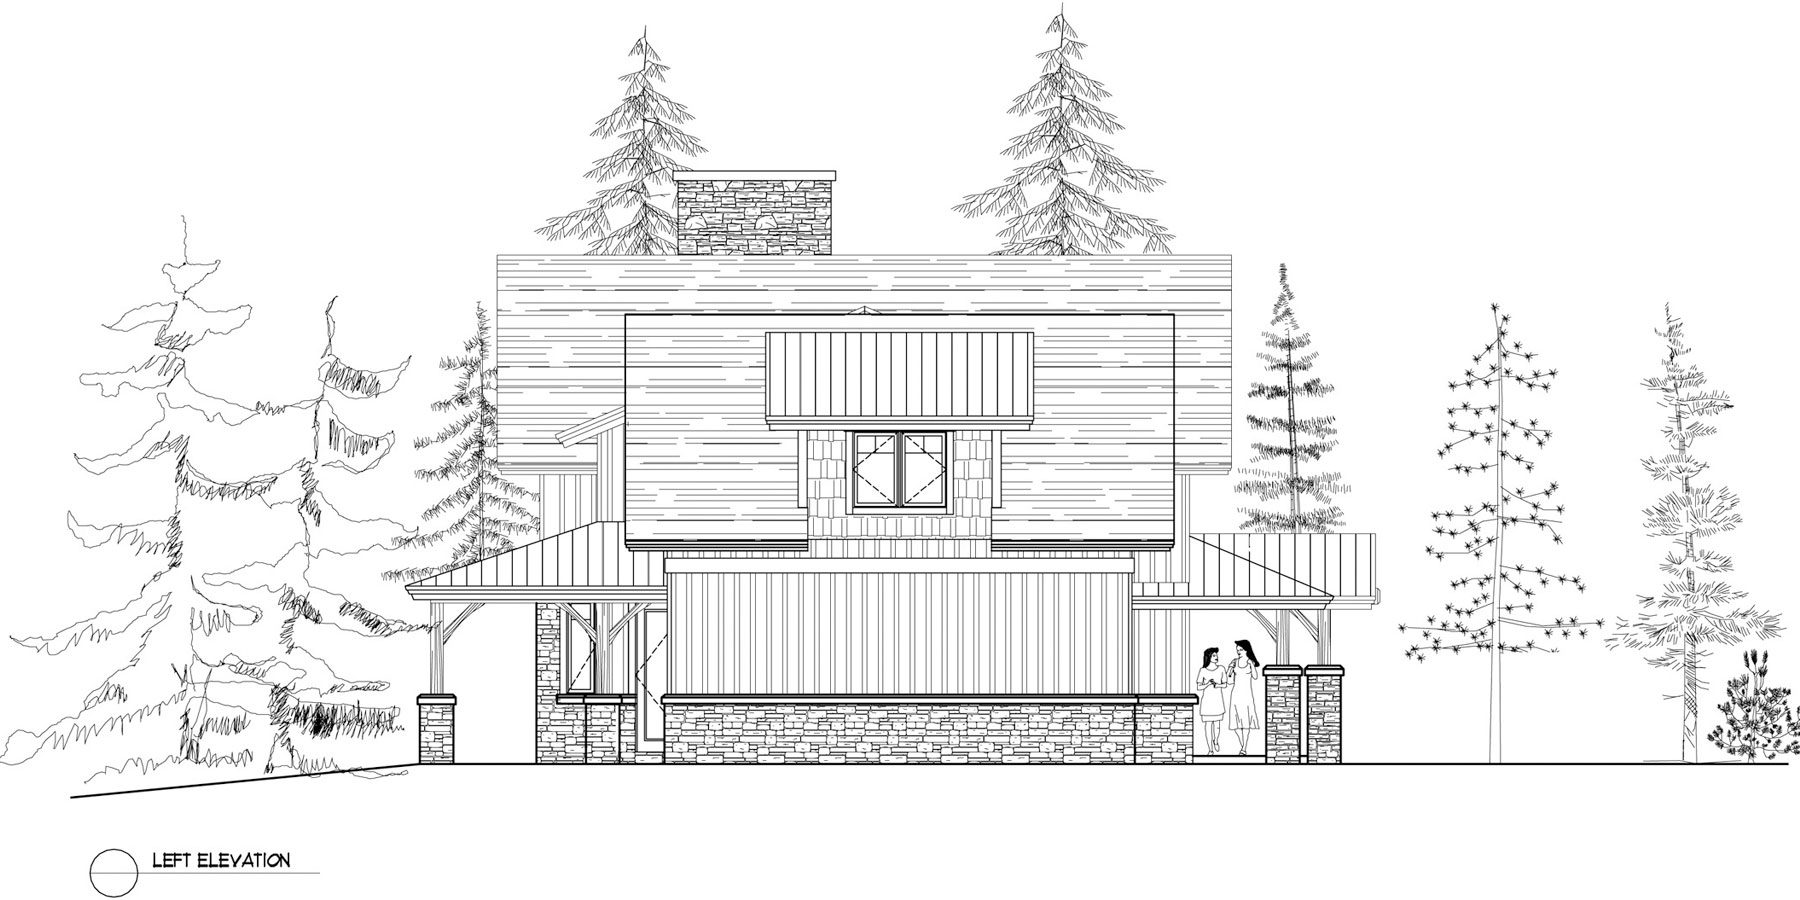 Normerica Timber Frames, House Plan, The Dufferin 3512, Left Elevation